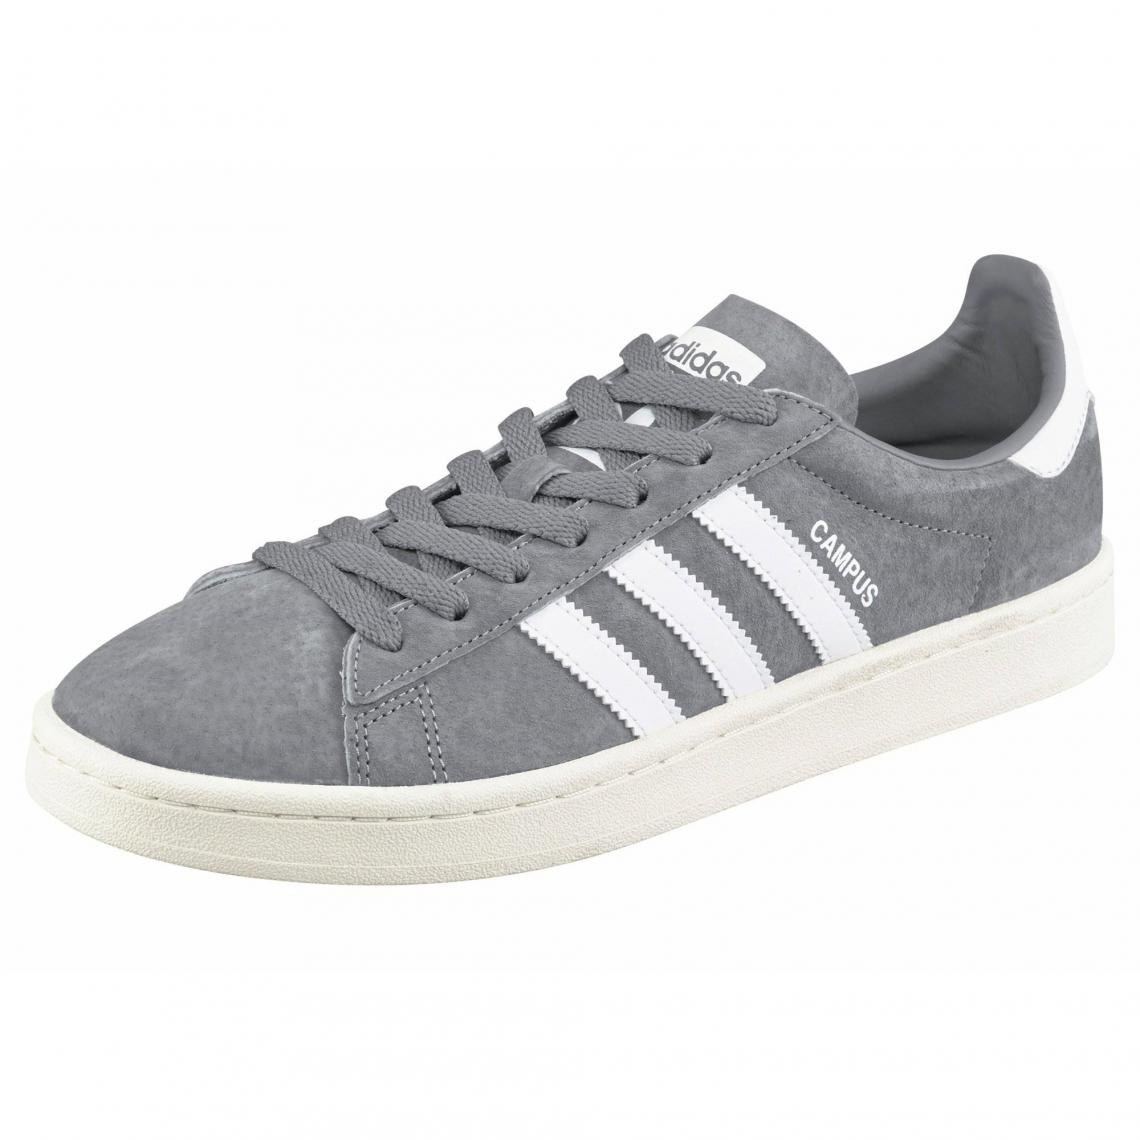 newest collection 5ac57 9e677 Sneaker Campus homme adidas Originals - Gris - Blanc Adidas Originals Homme